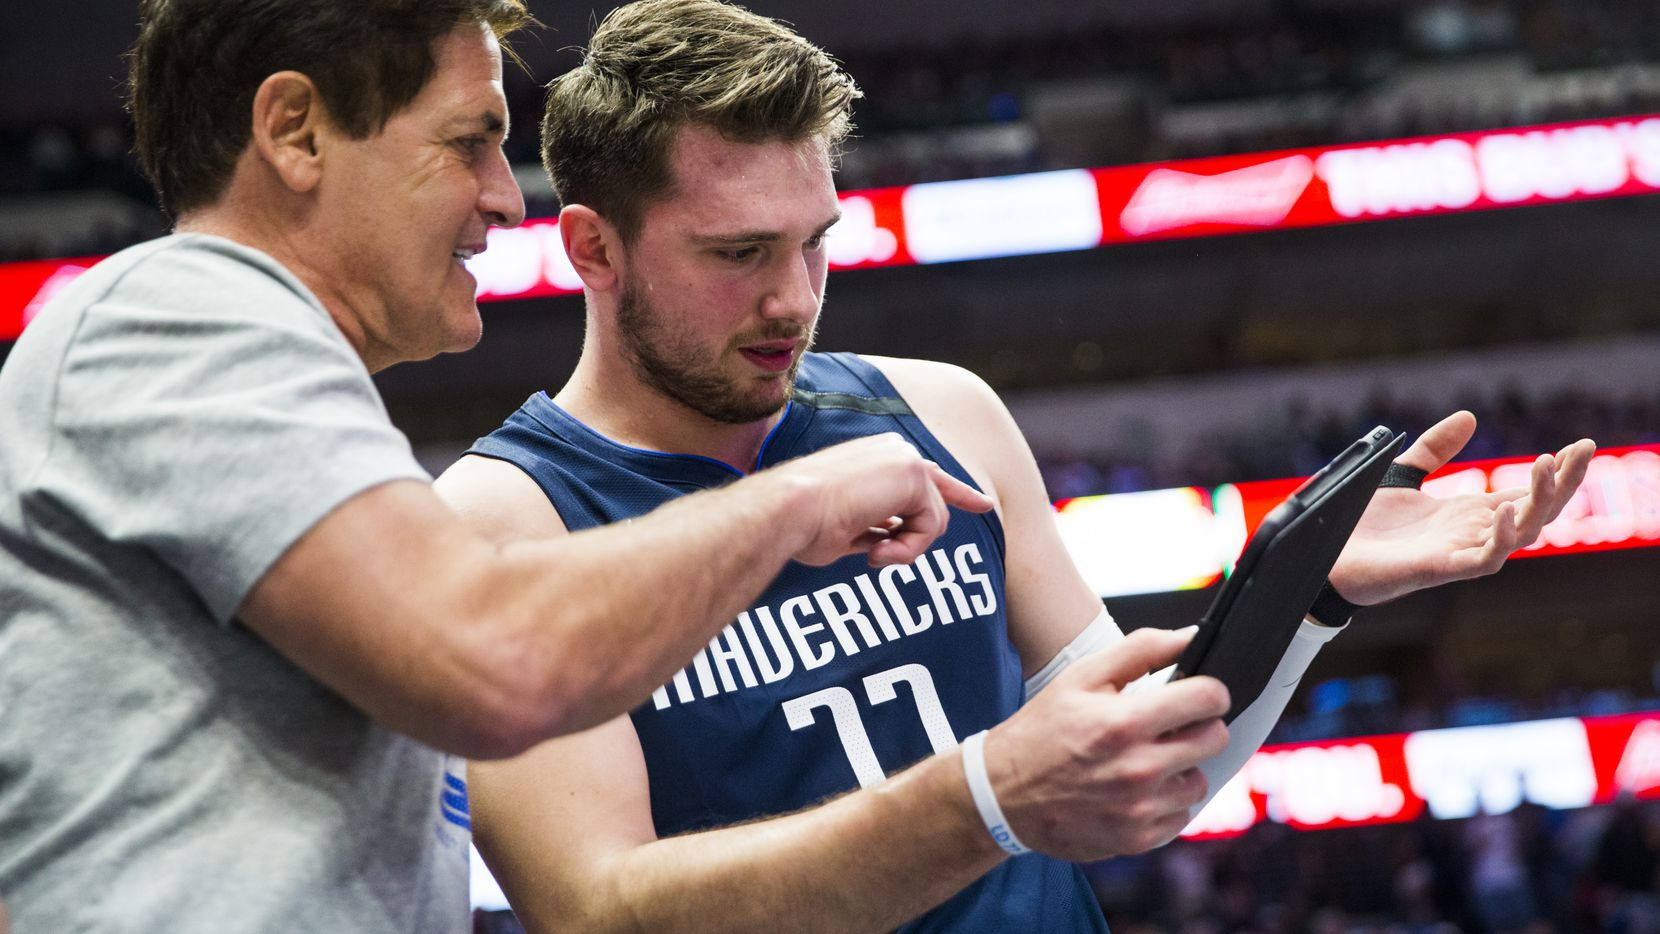 FILE - Mavericks guard Luka Doncic (77) looks at a play with Mavs owner Mark Cuban during the first quarter of a game against the Pacers on Sunday, March 8, 2020, at American Airlines Center in Dallas.